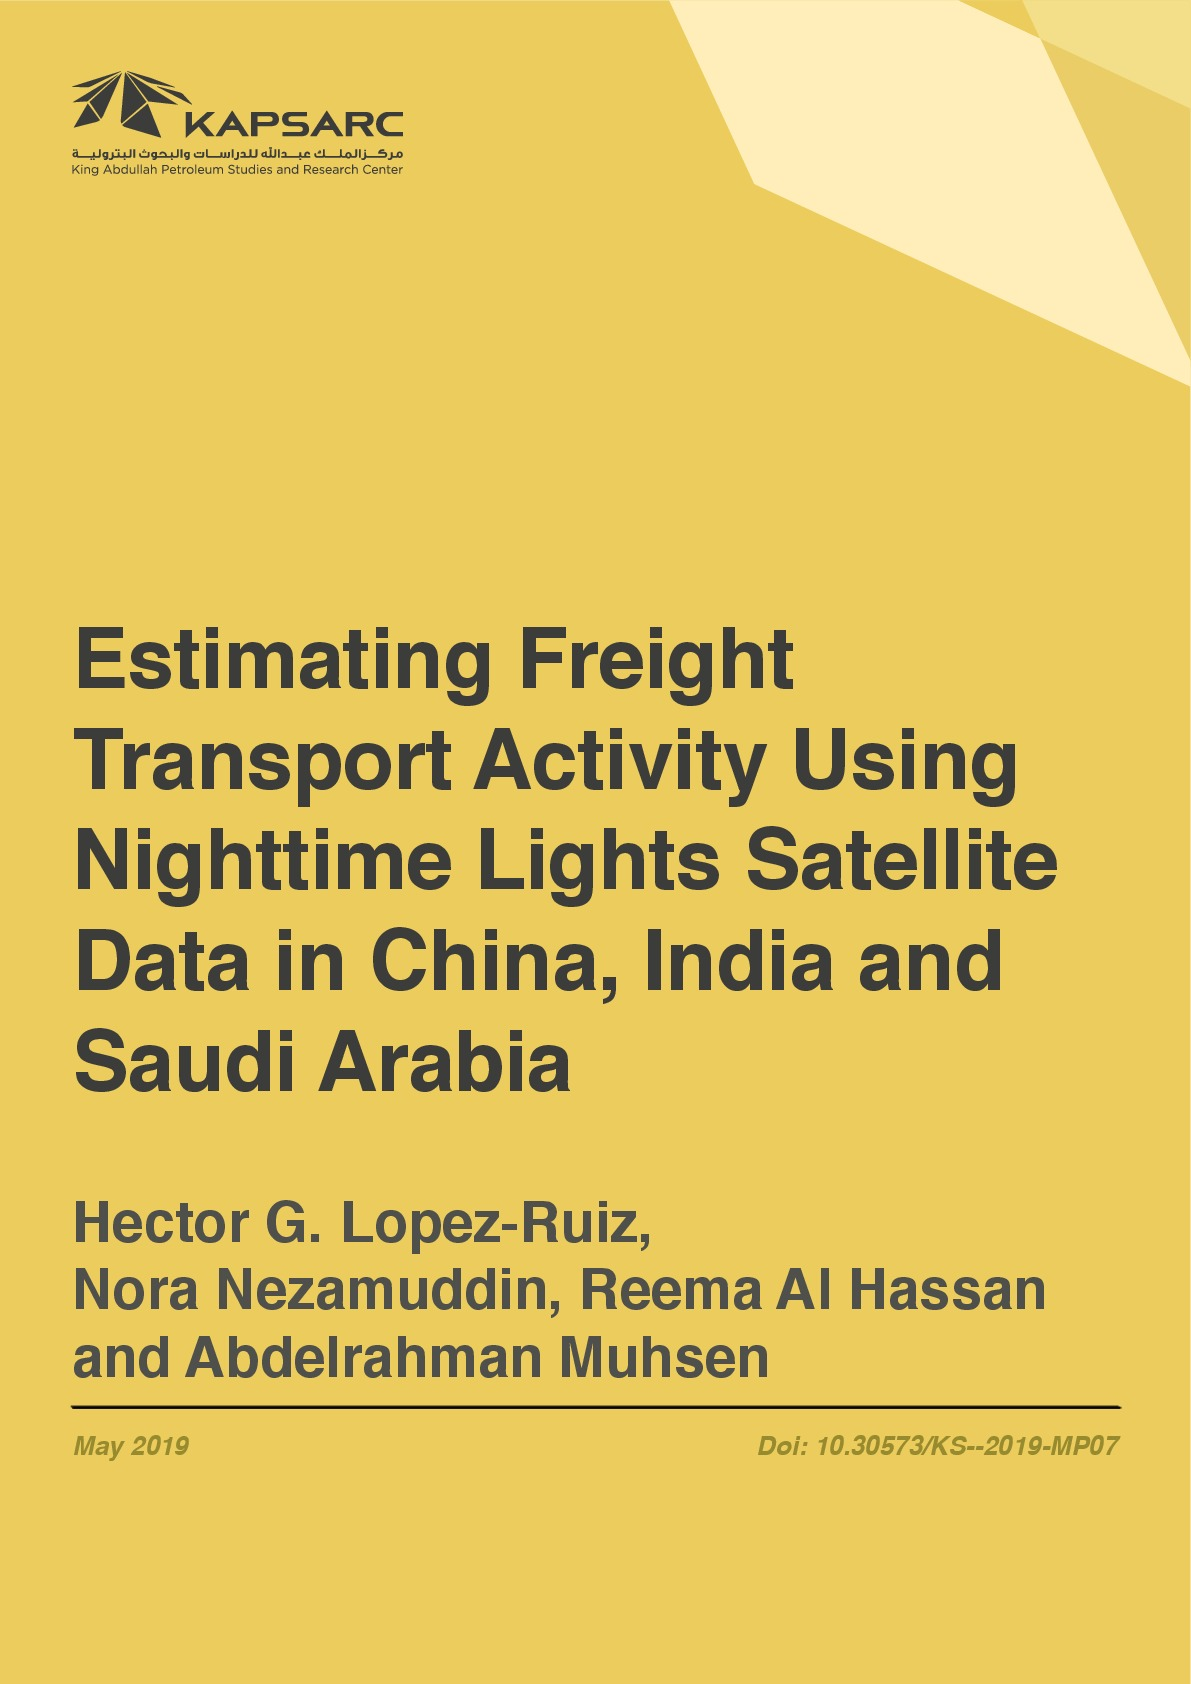 Estimating Freight Transport Activity Using Nighttime Lights Satellite Data in China, India and Saudi Arabia